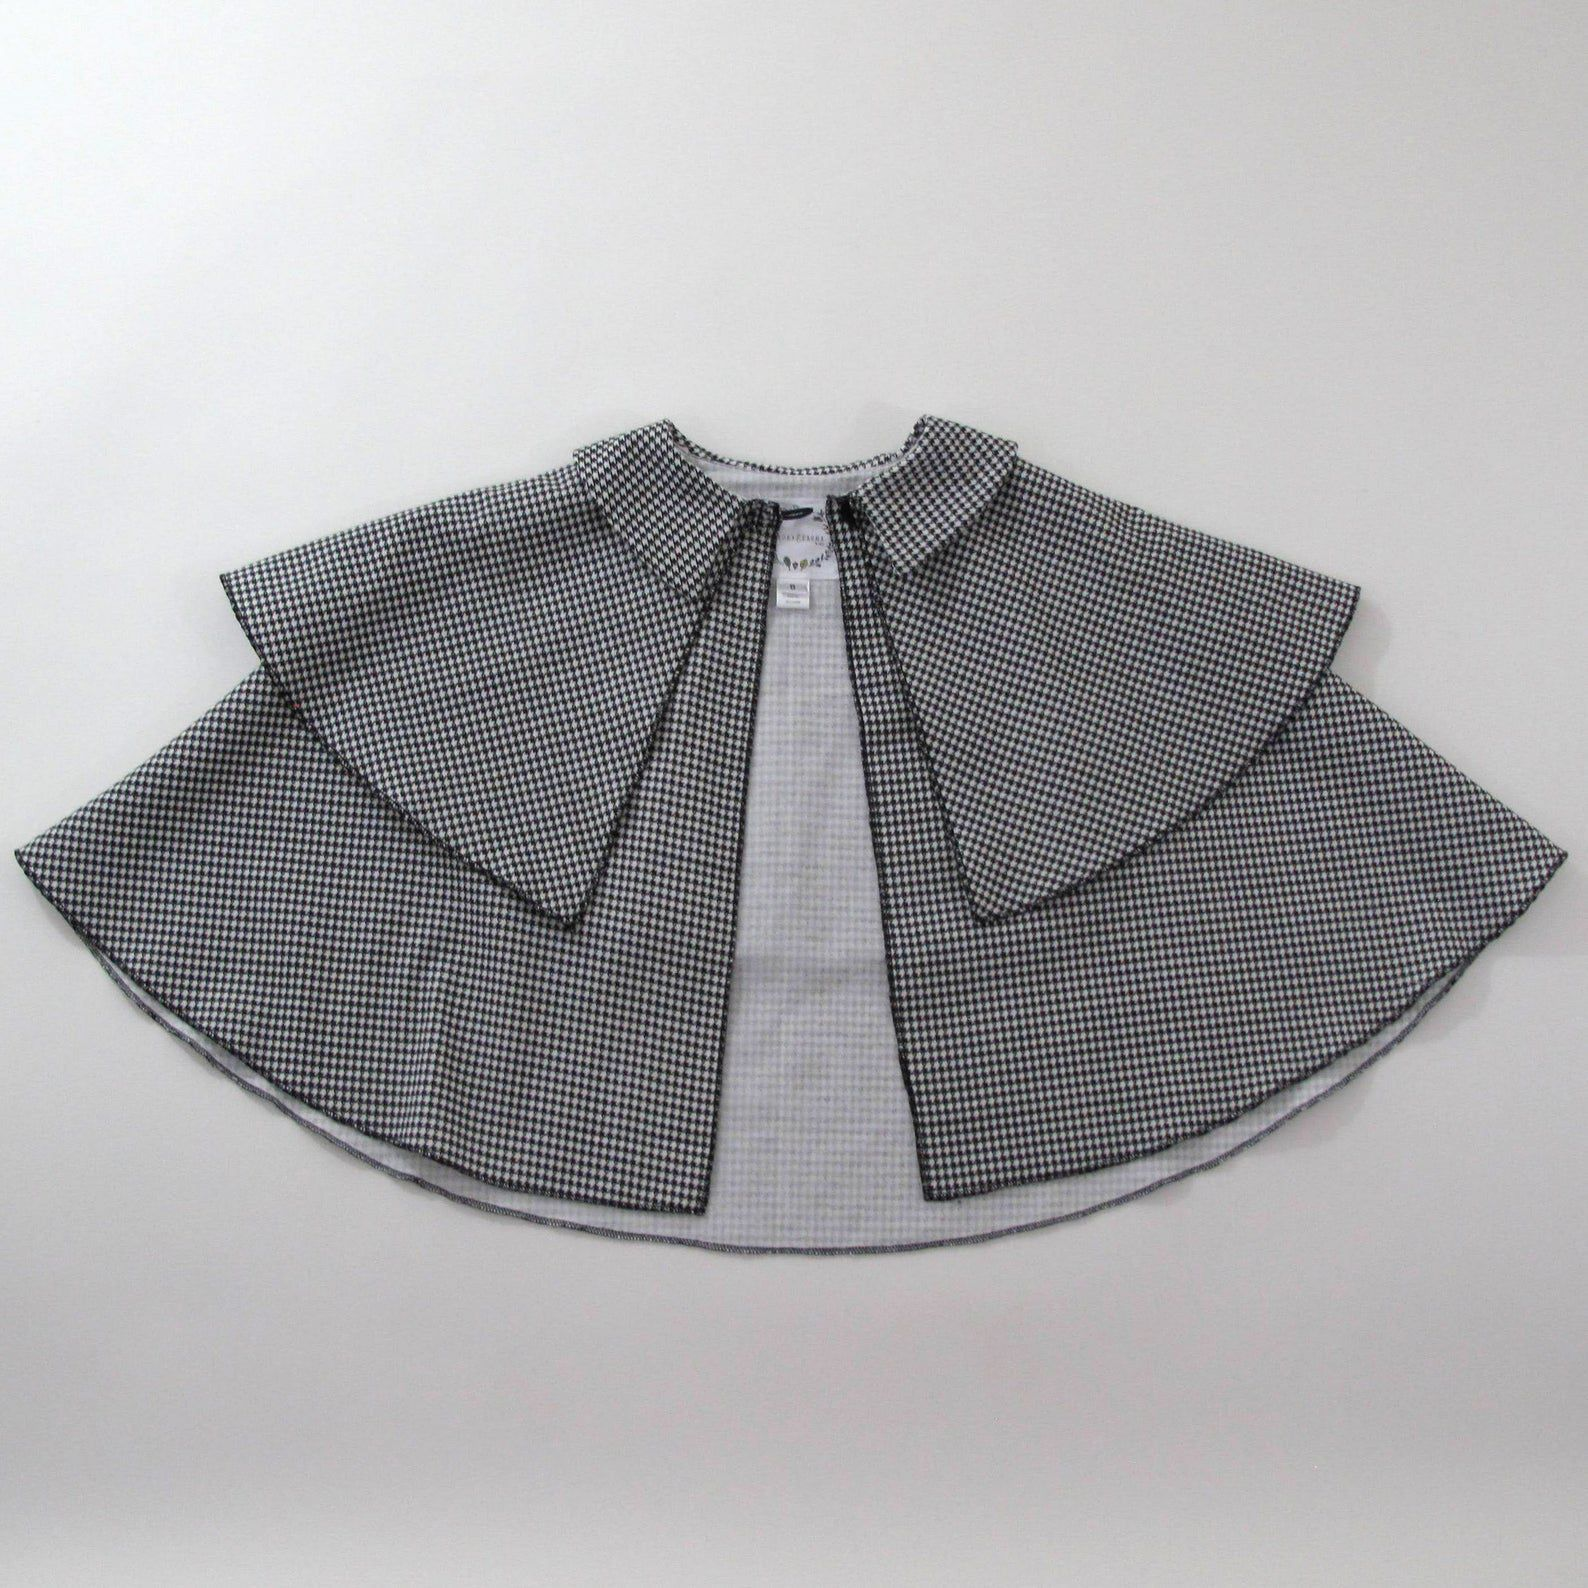 Image of a houndstooth cape.